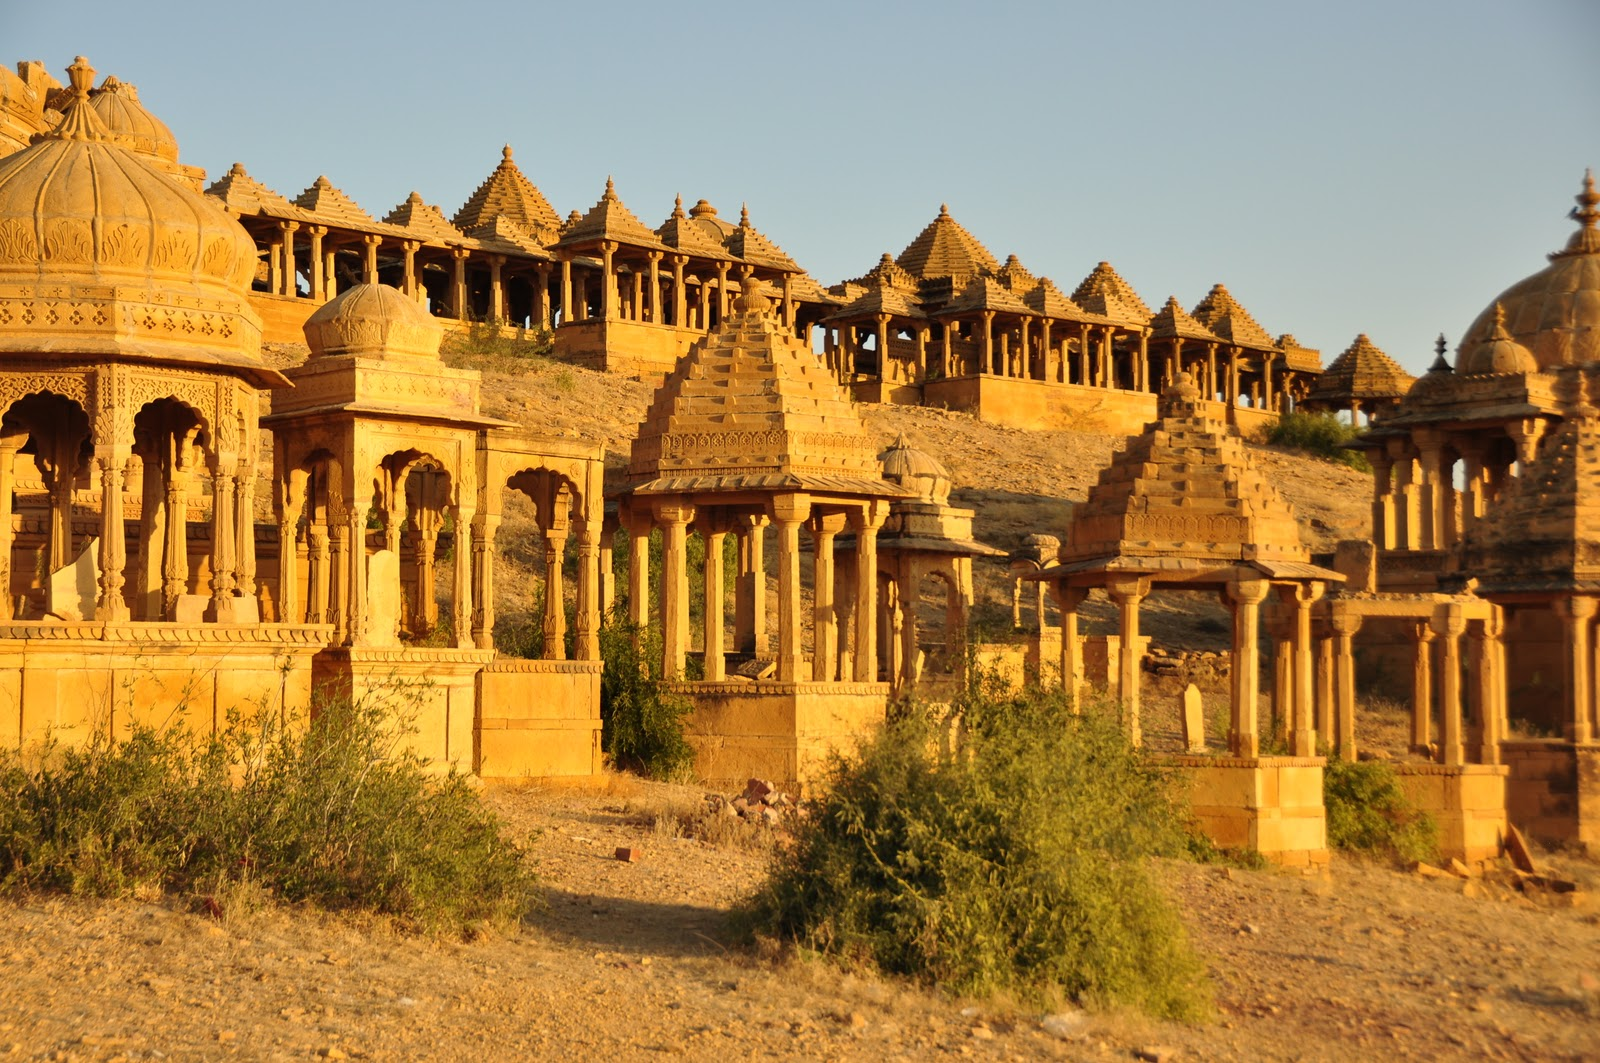 Jaisalmer India  city photo : Let's Go...: Jaisalmer, India